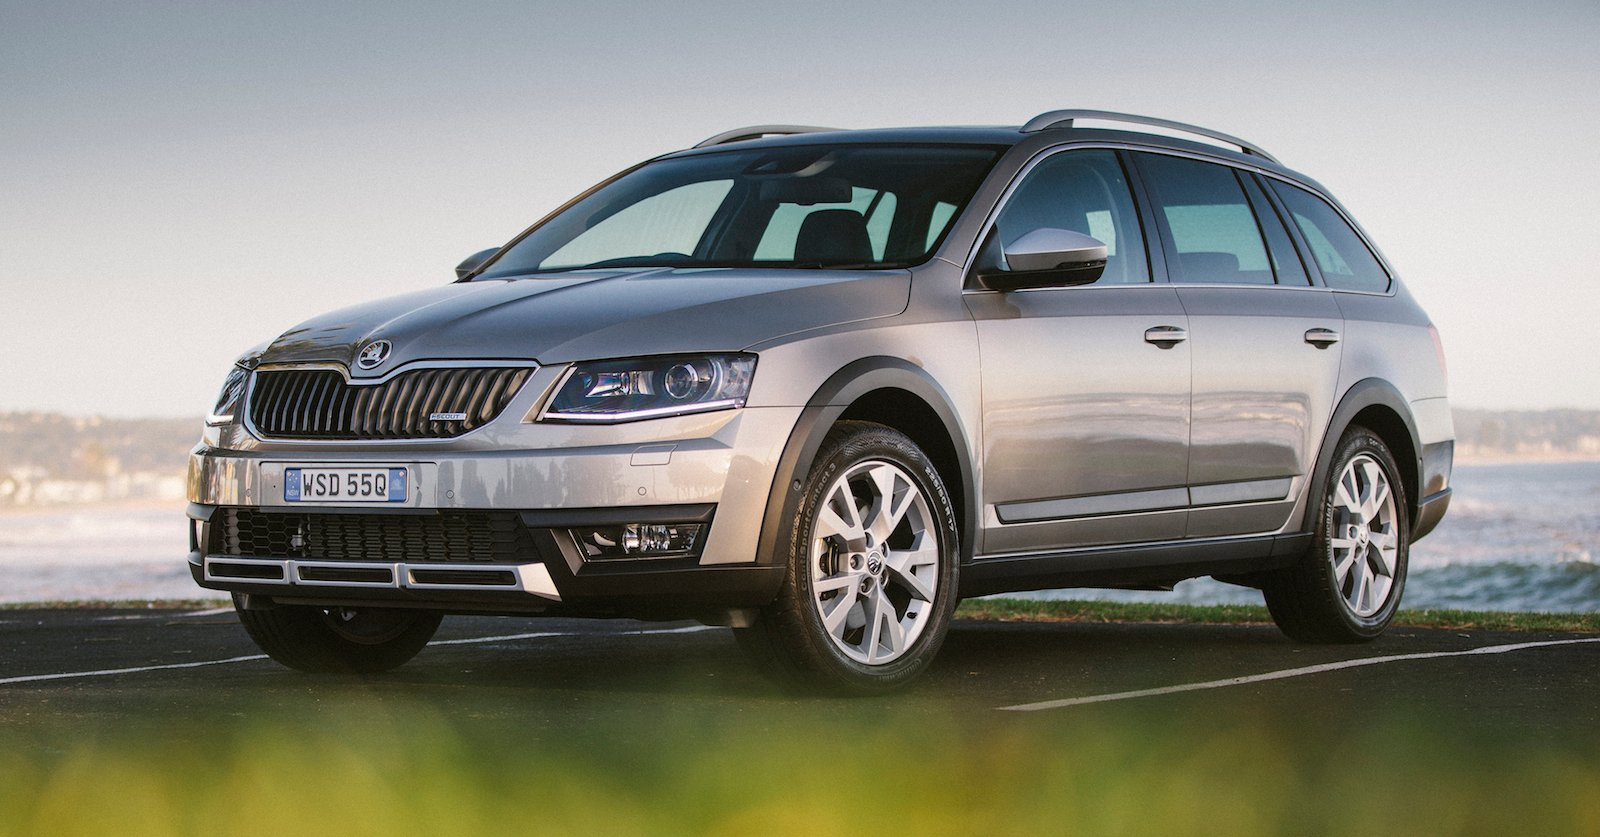 2015 skoda octavia scout 4x4 pricing and specifications photos 1 of 4. Black Bedroom Furniture Sets. Home Design Ideas